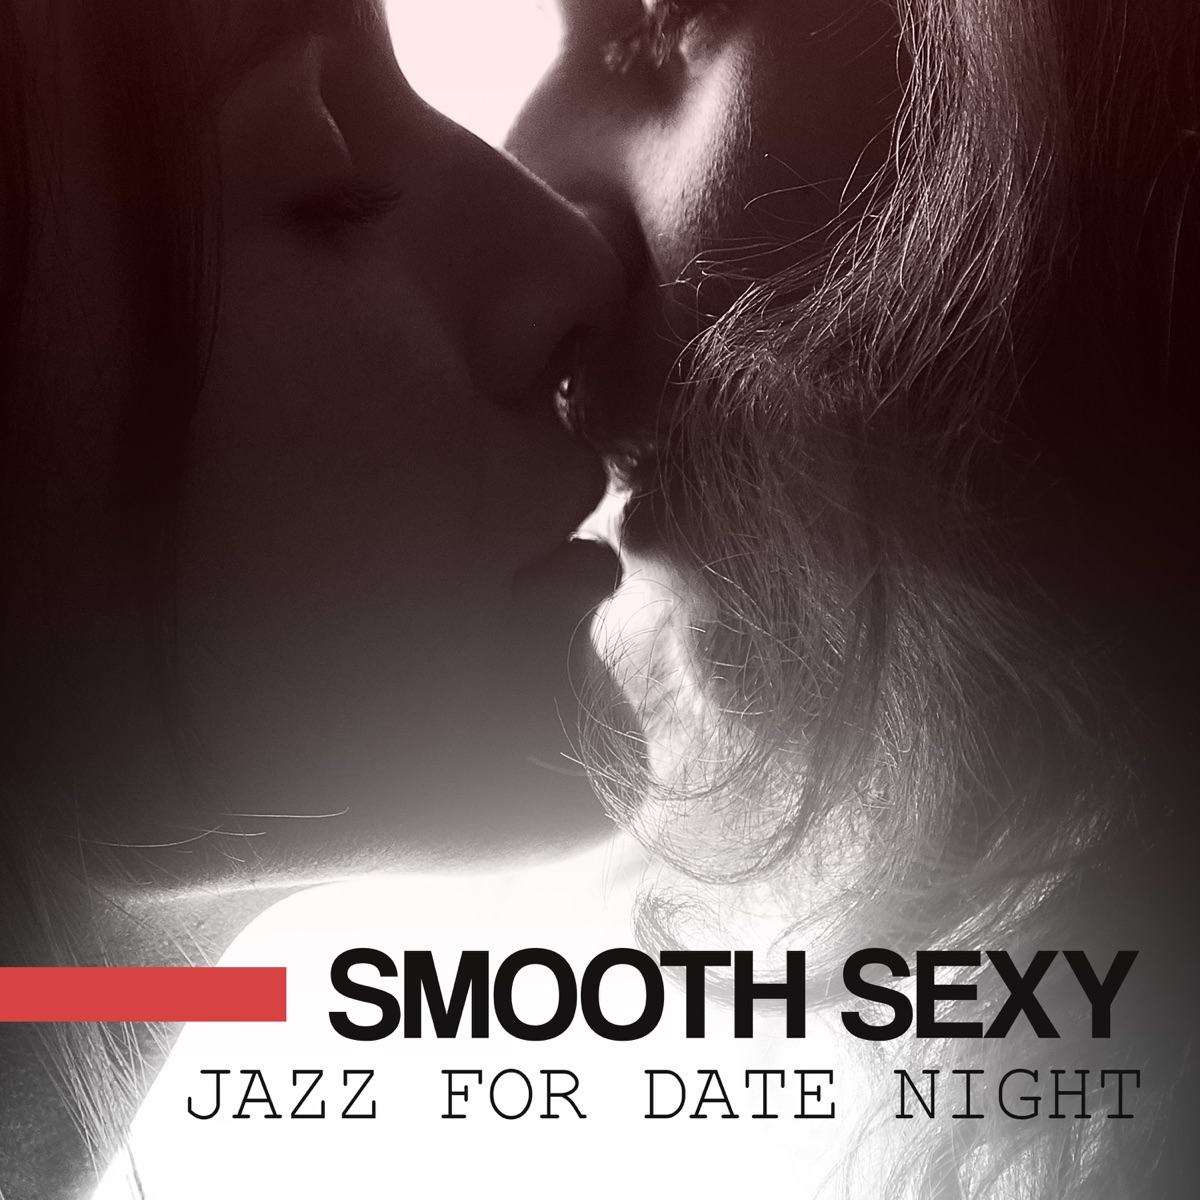 Smooth Sexy Jazz for Date Night: Most Romantic Tracks for Lovers